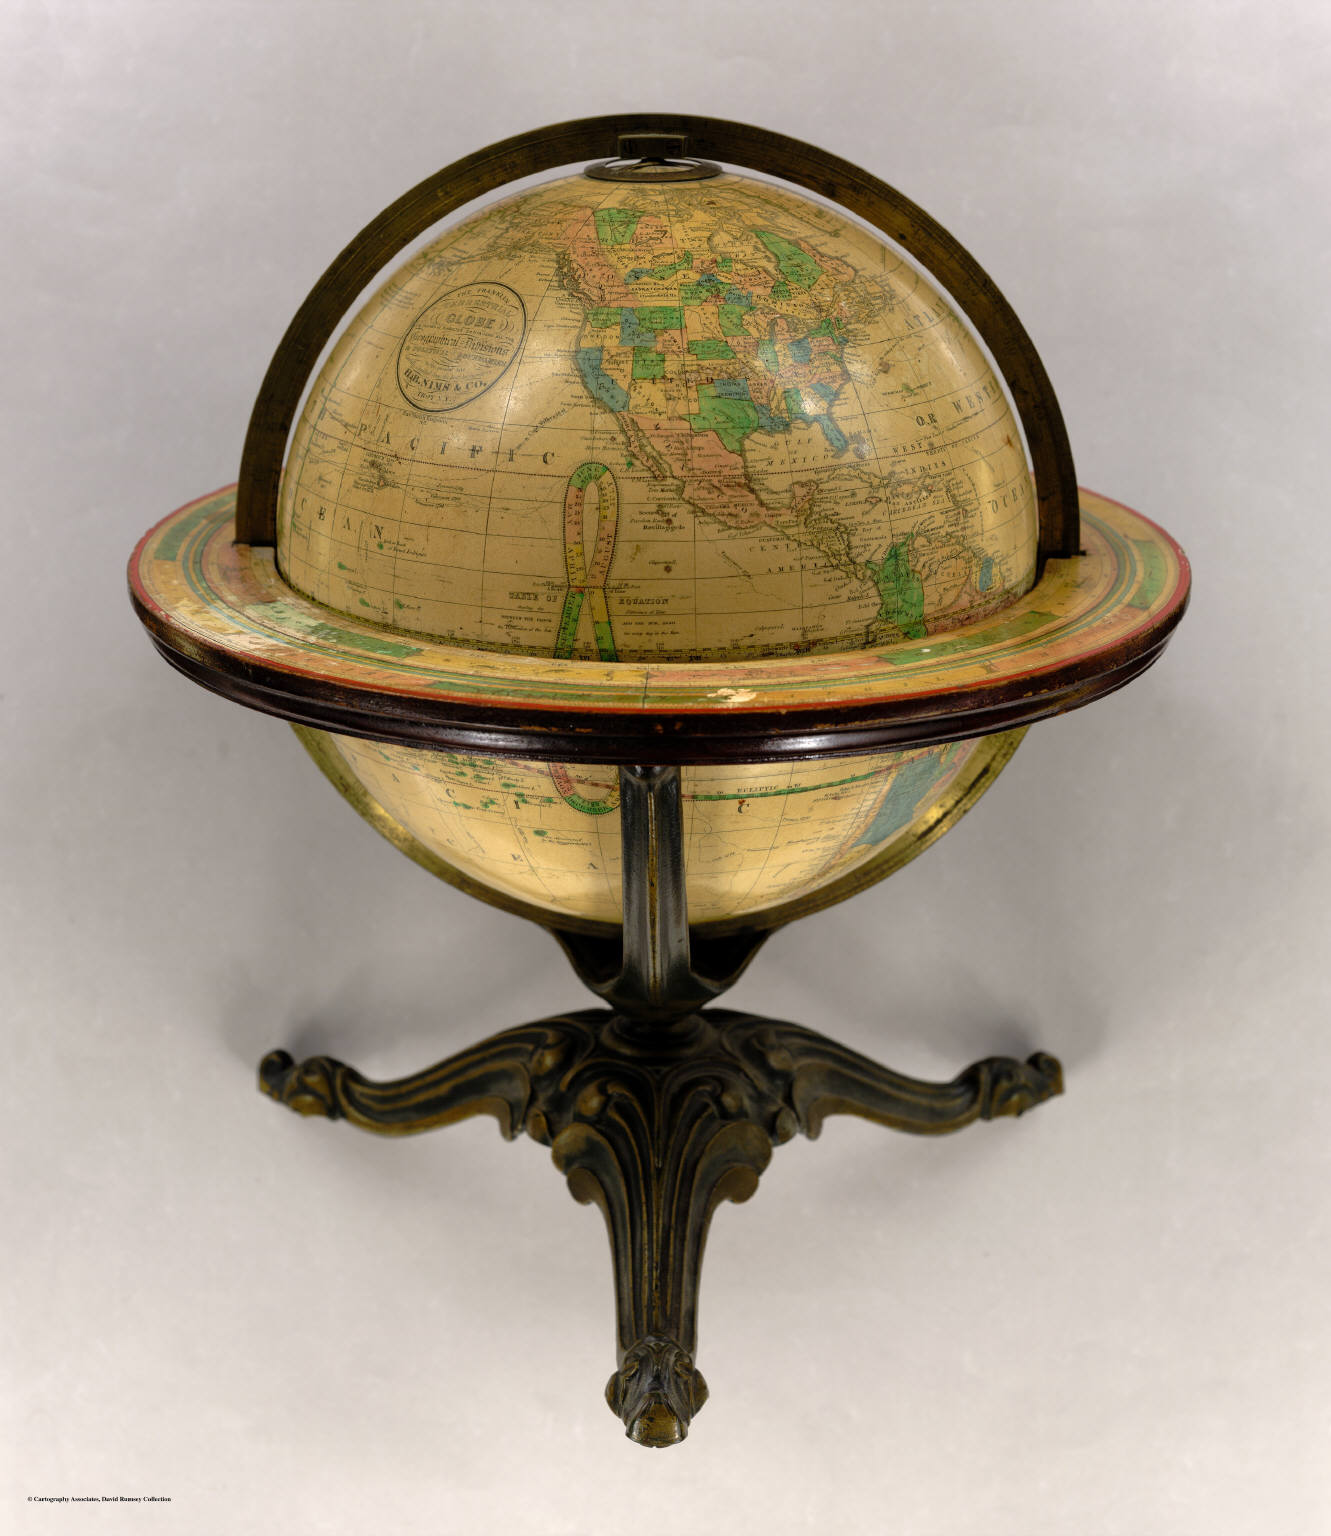 Dating terrestrial globes